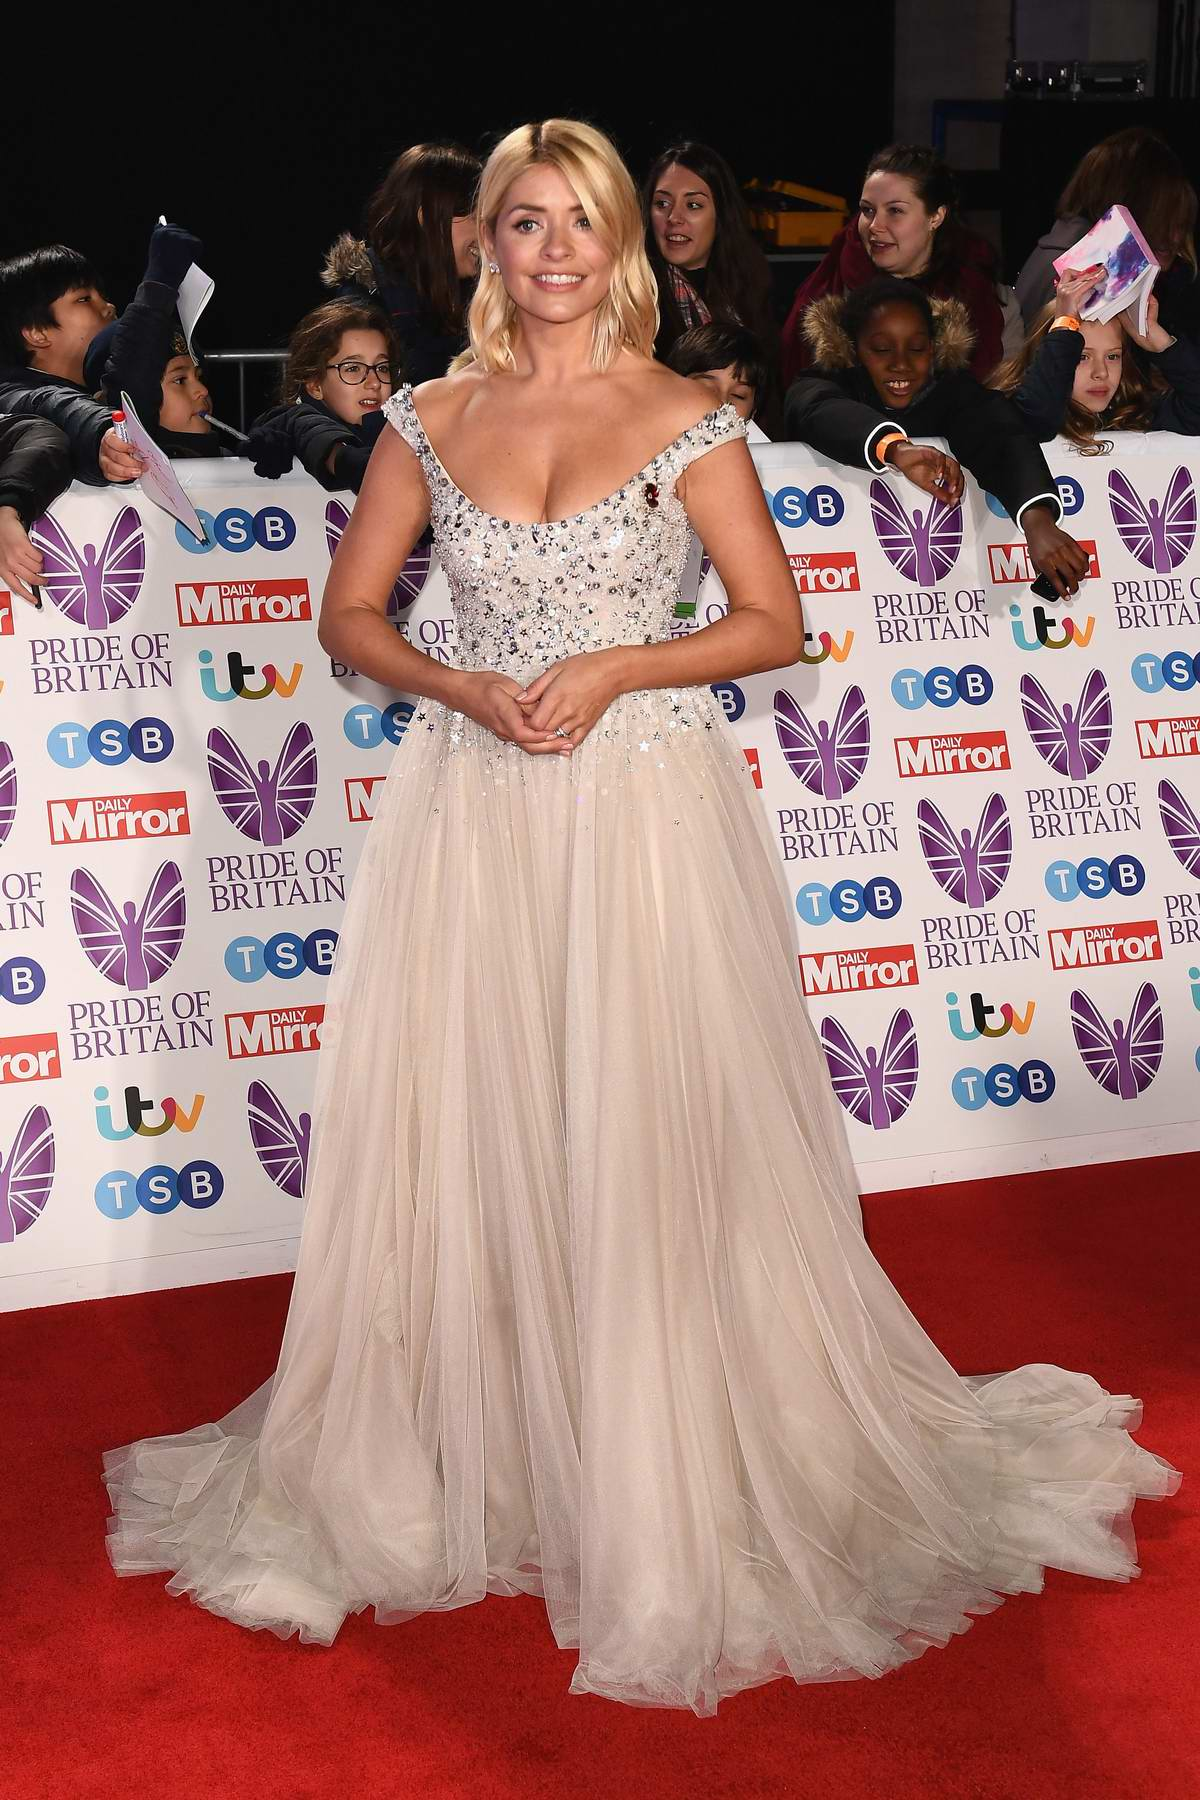 Holly Willoughby attends the Pride of Britain Awards 2018 at the Grosvenor Hotel in London, UK